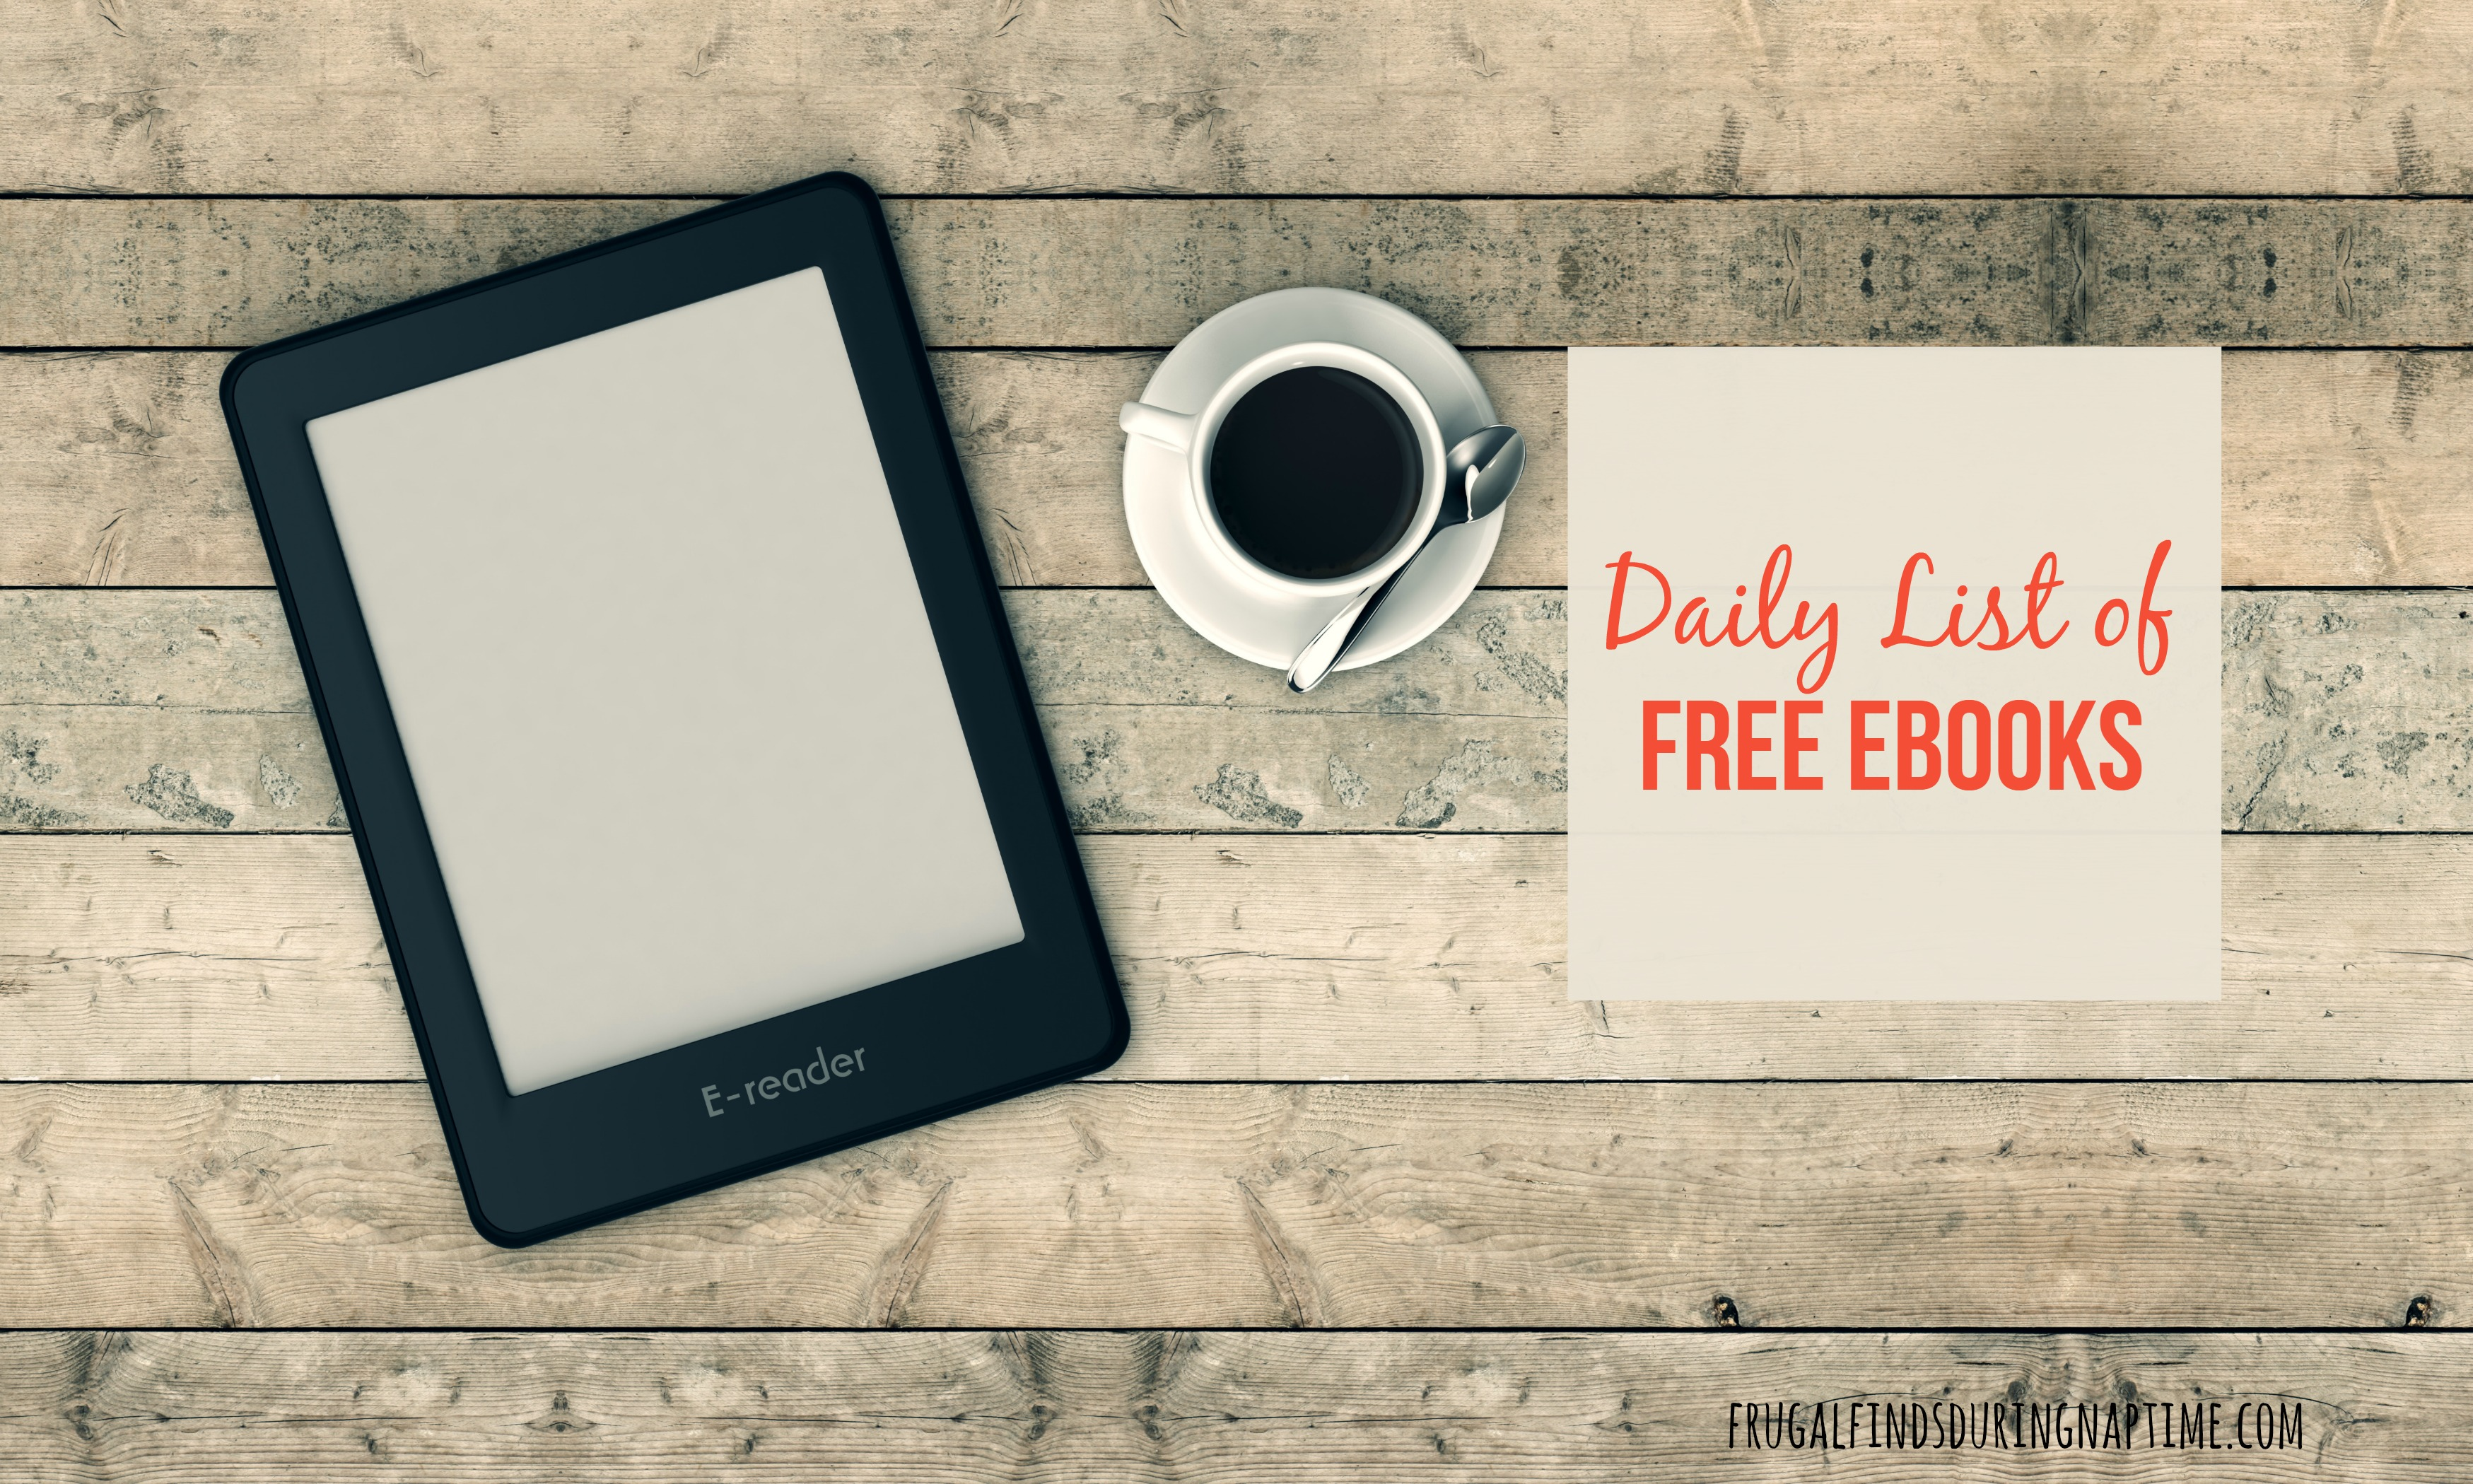 Free eBooks Archives - Frugal Finds During Naptime